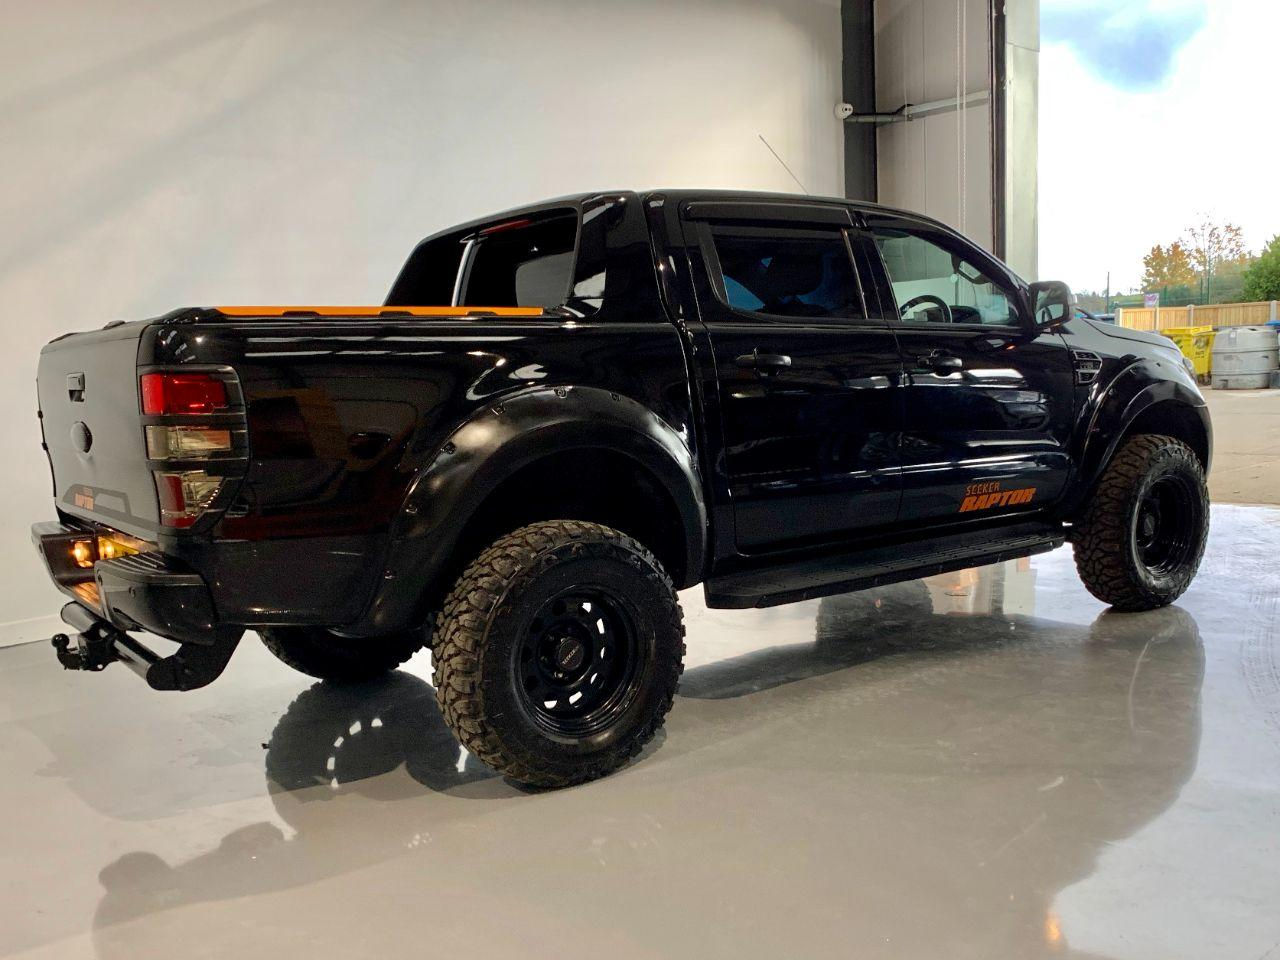 2016 Ford Ranger Seeker Raptor Pick Up Double Cab Limited 2 2.2 TDCi  Uprated to 200 BHP  with 5k style pack